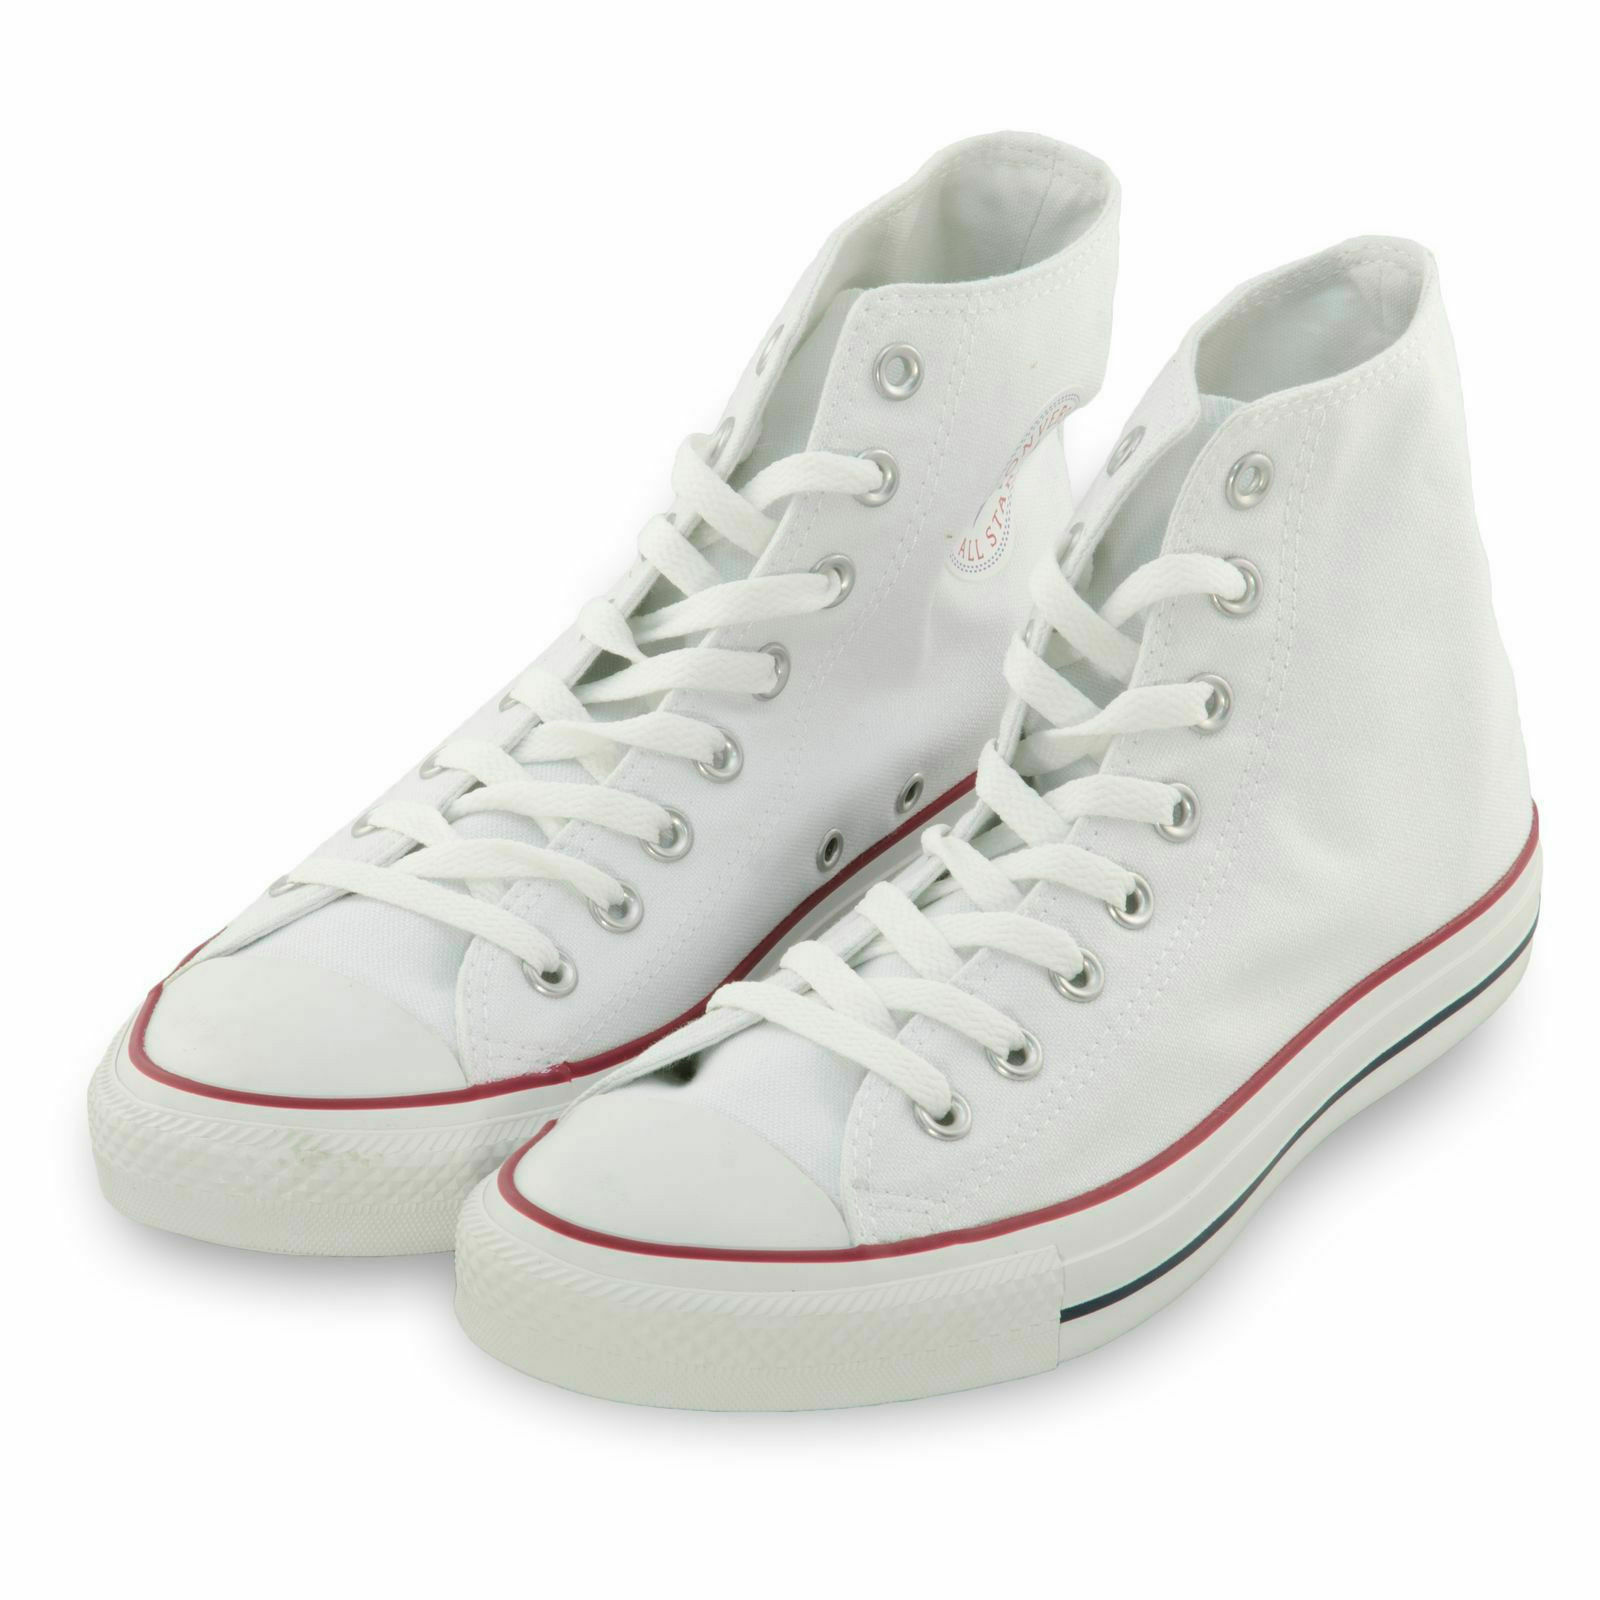 12c7b941c1e Converse Women Shoes Chuck Taylor All Star HiTop Flat Canvas Sneaker Optic  White